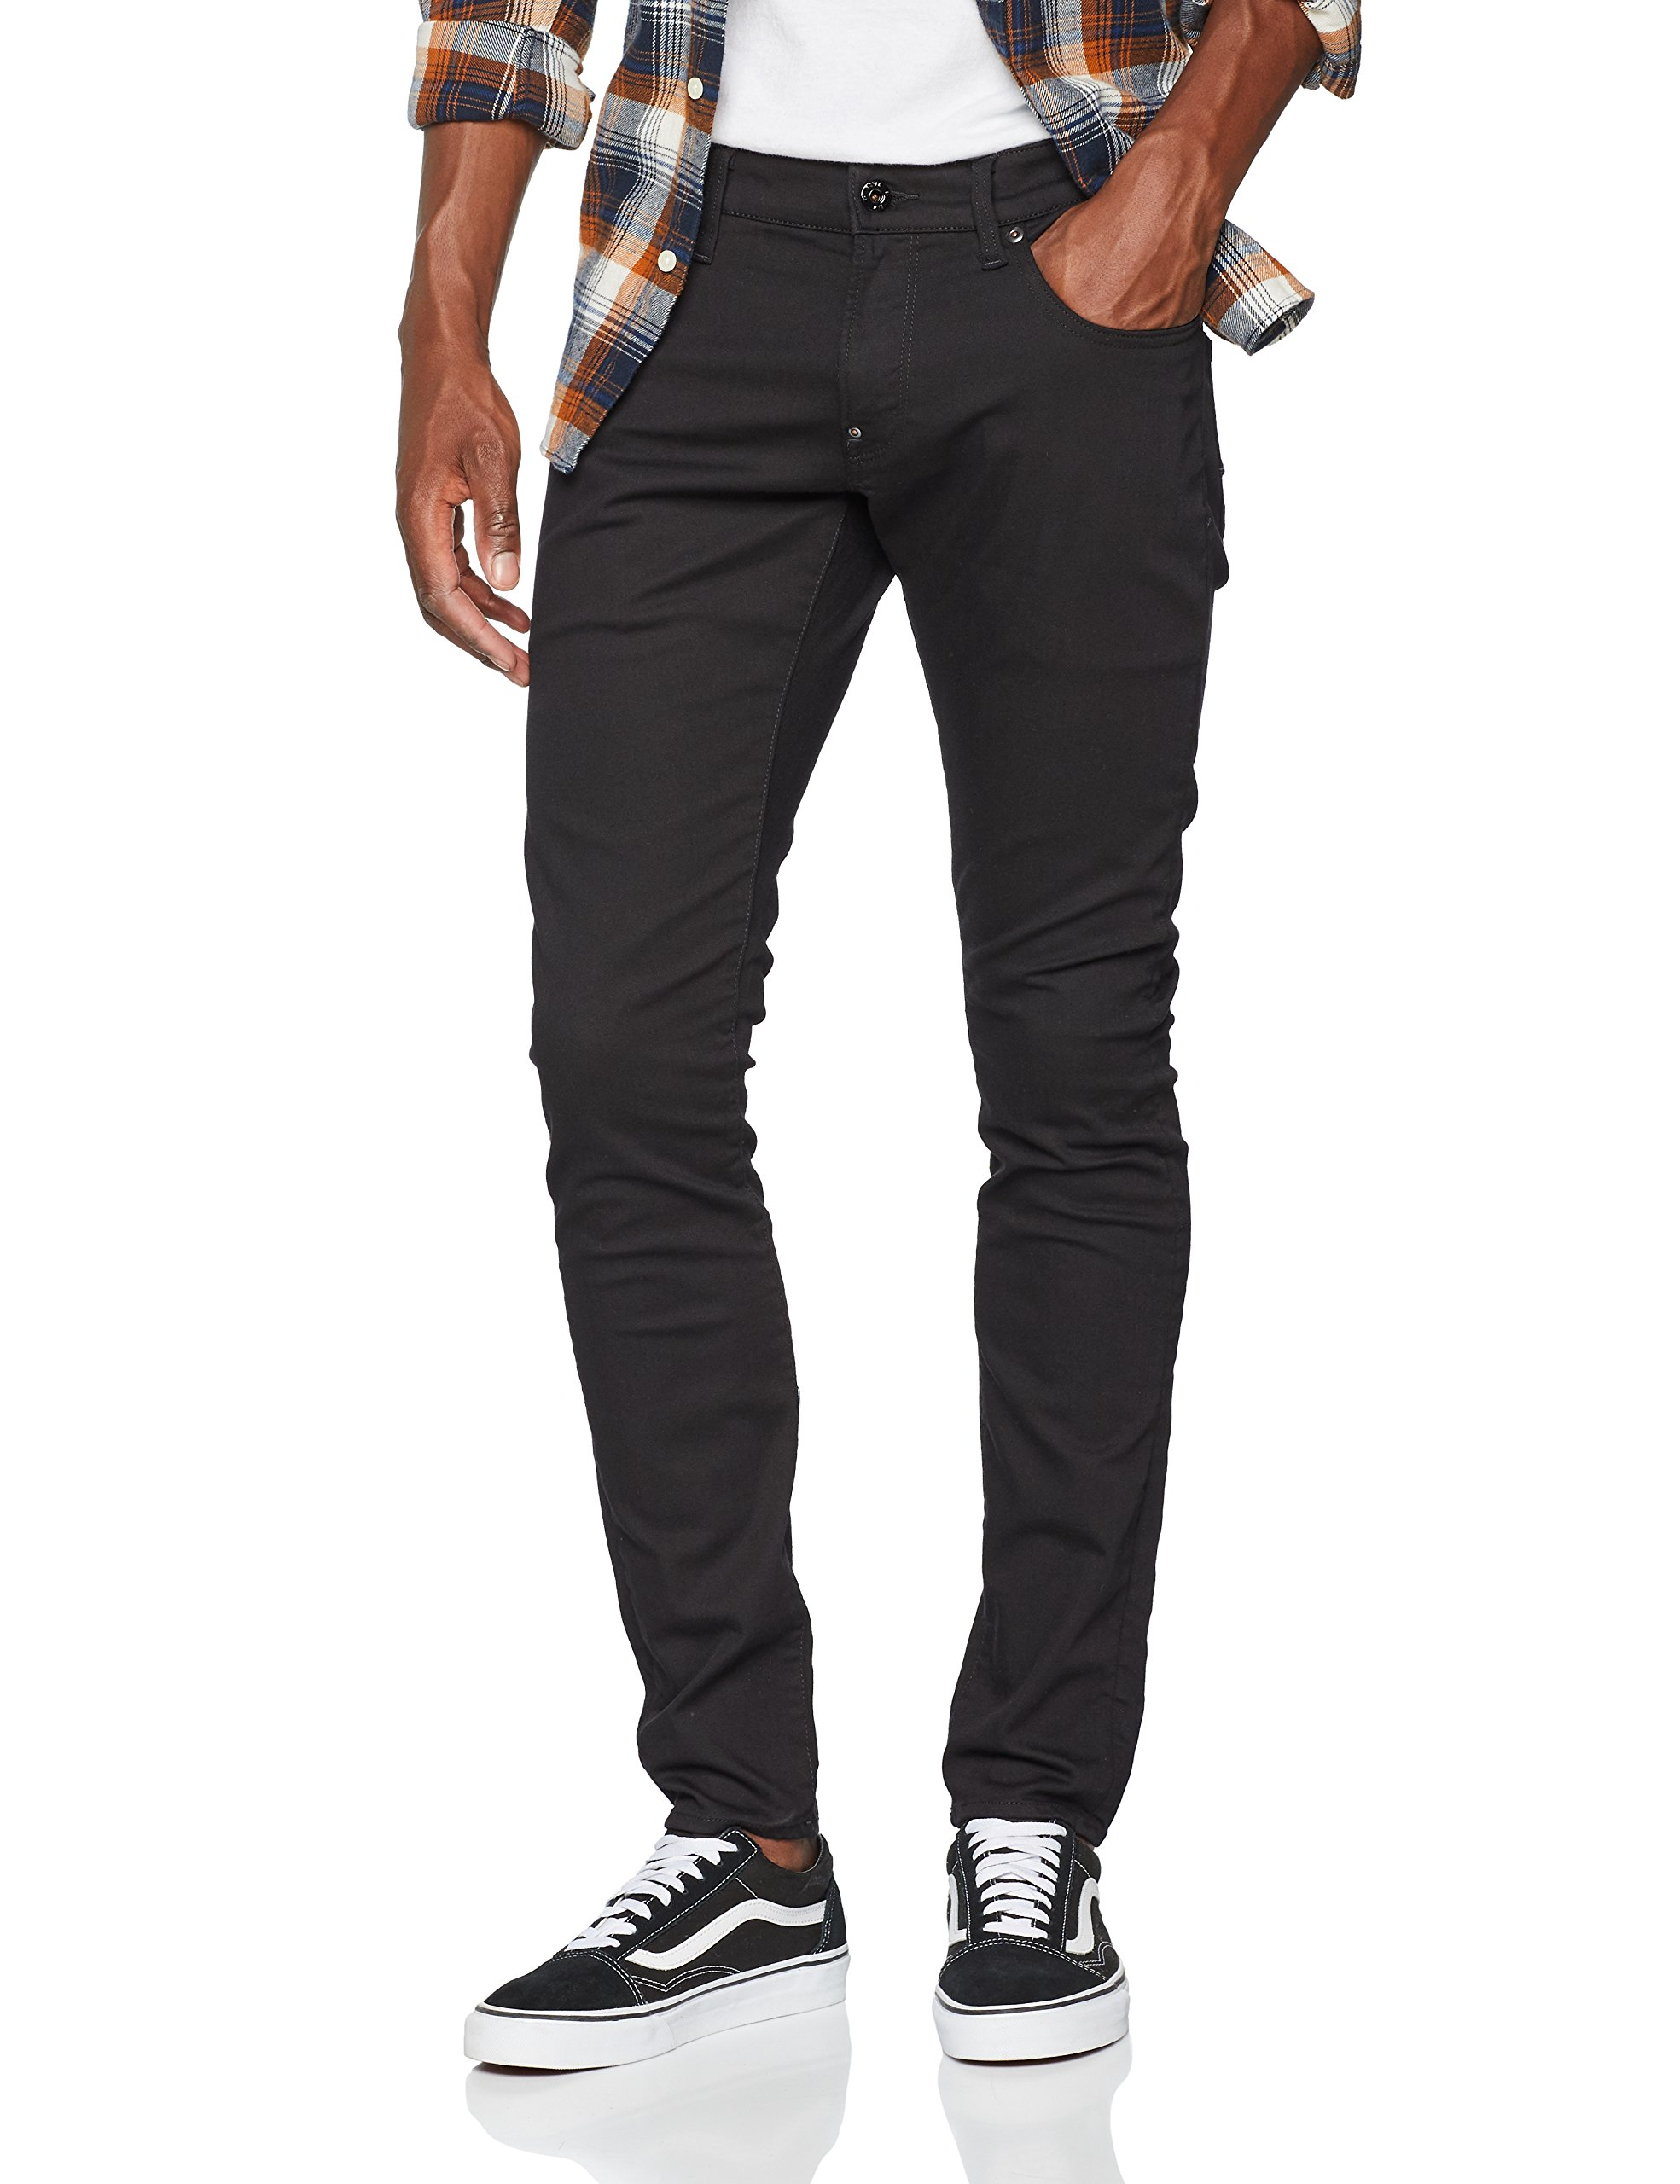 HommeNoirrinsed Raw Revend 08244w40l SlimJeans 8970 star Super G sxBthdQrC